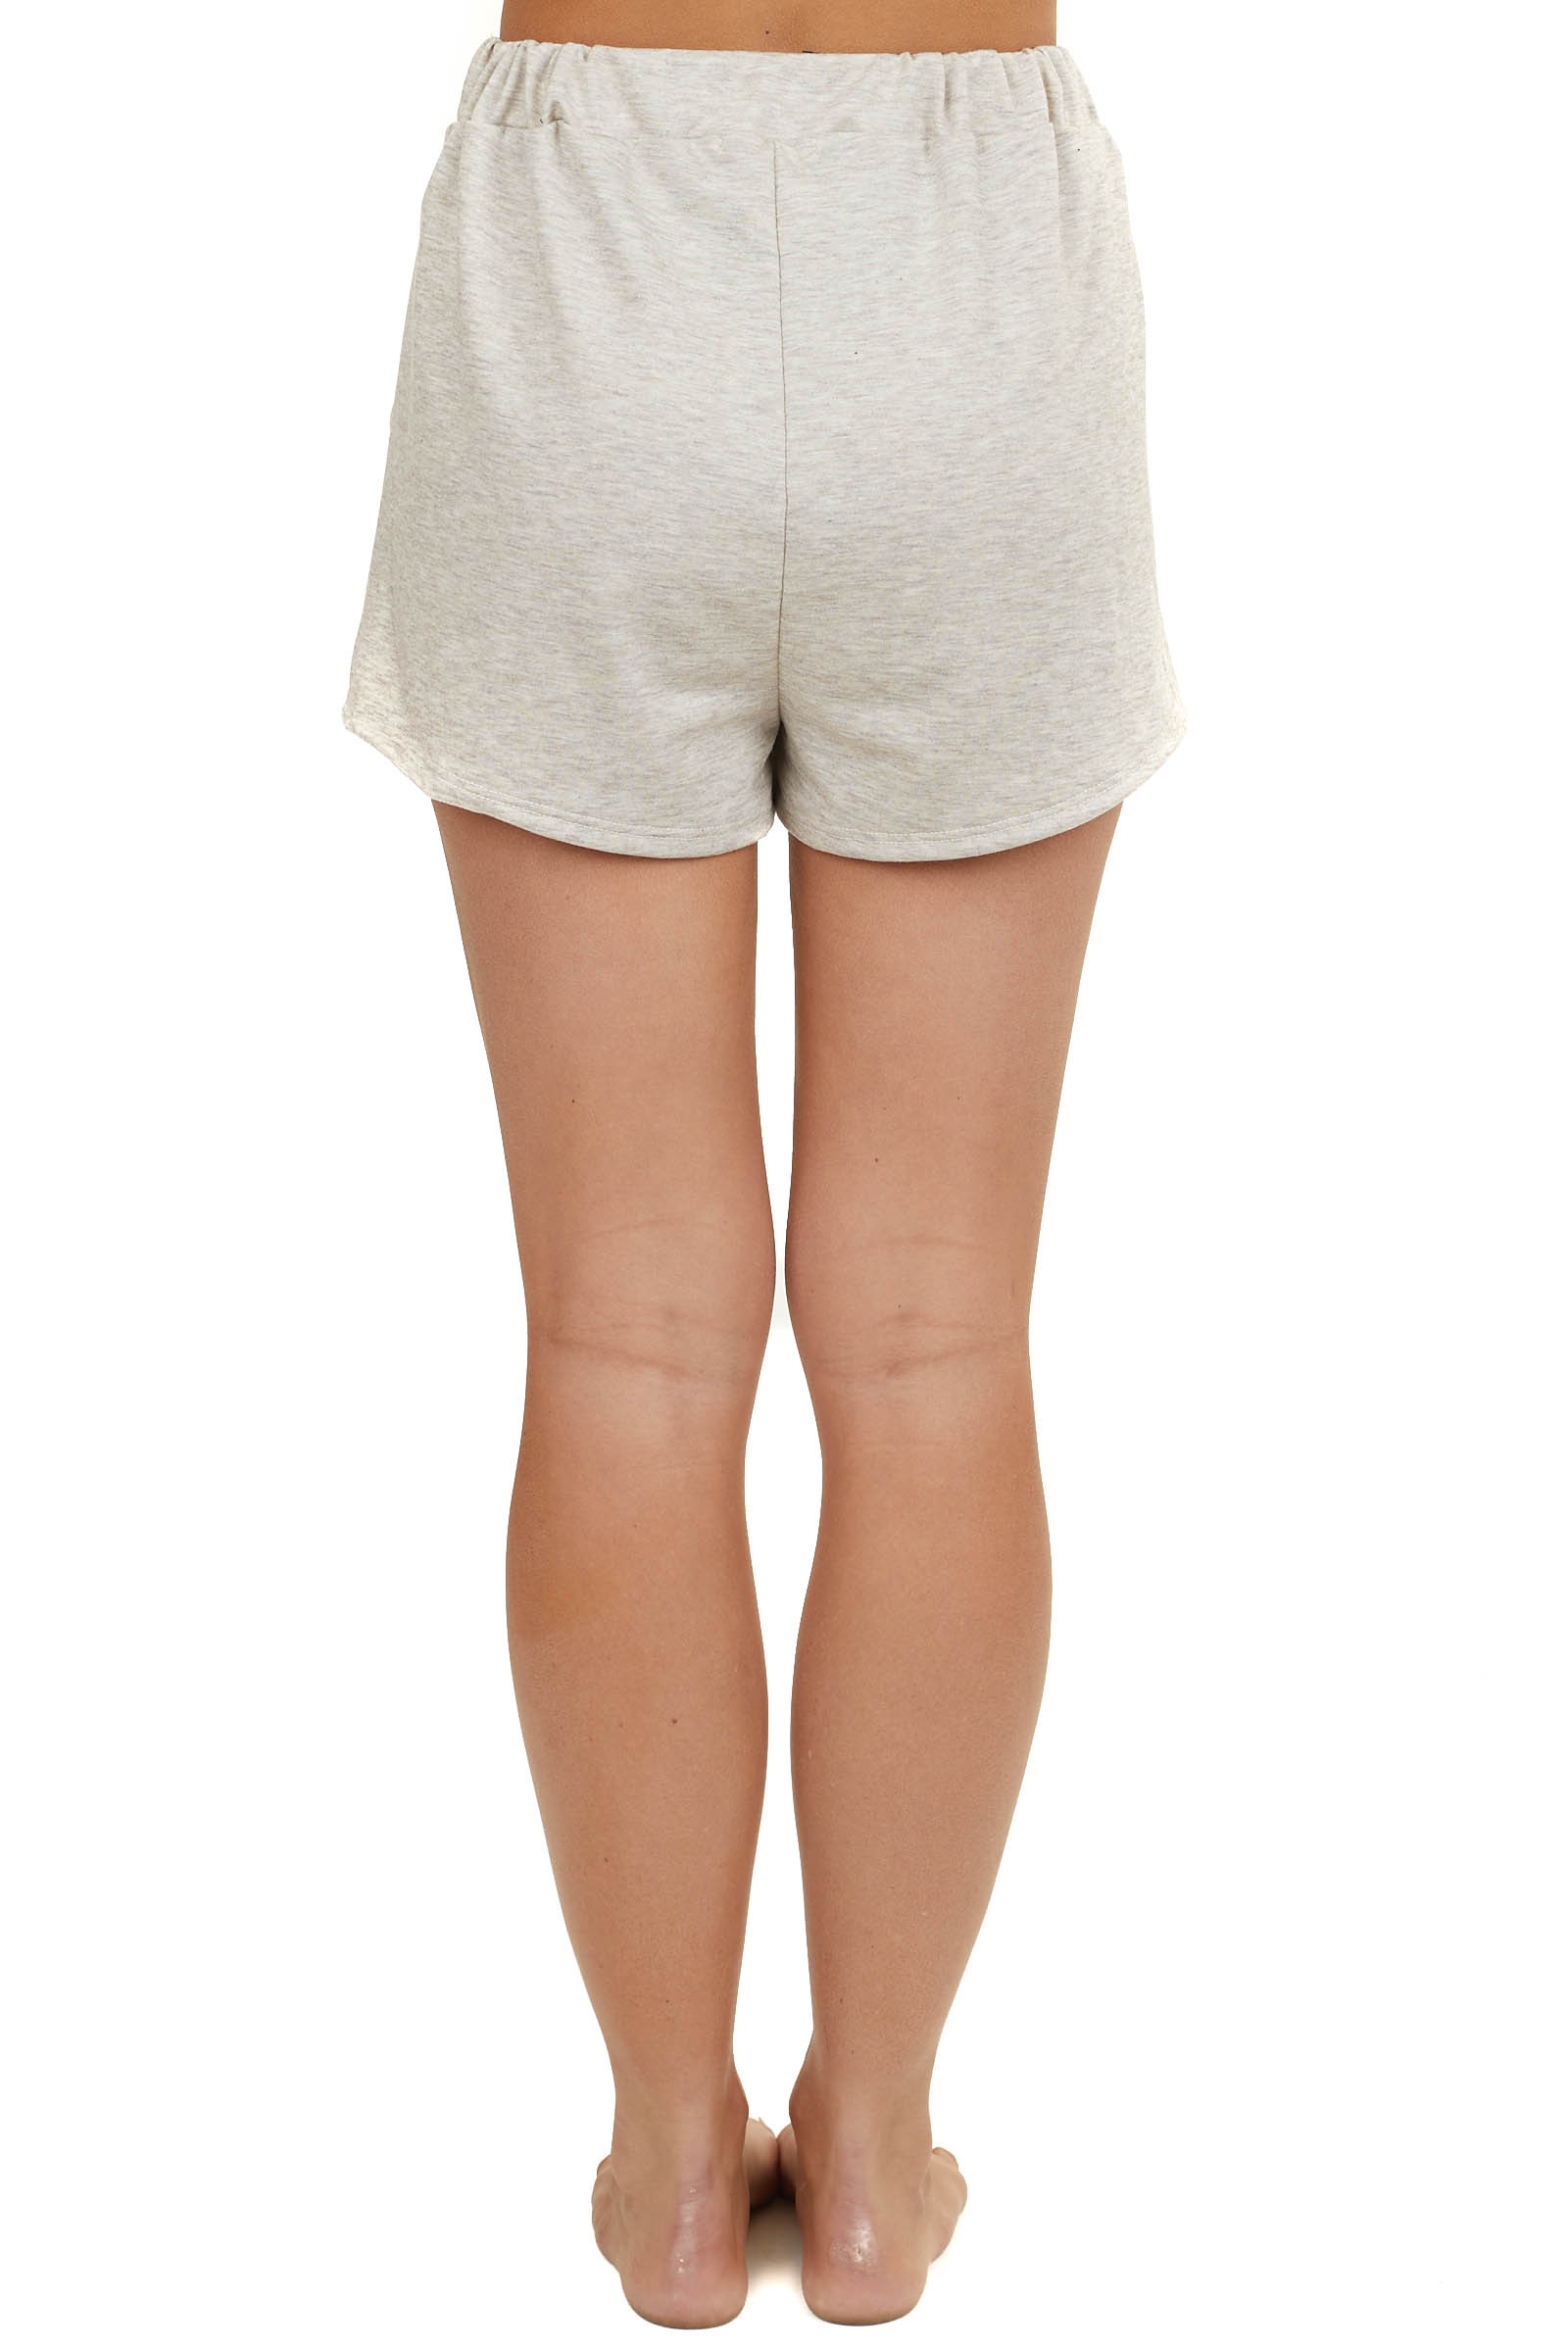 Heathered Beige Loungewear Drawstring Shorts with Pockets